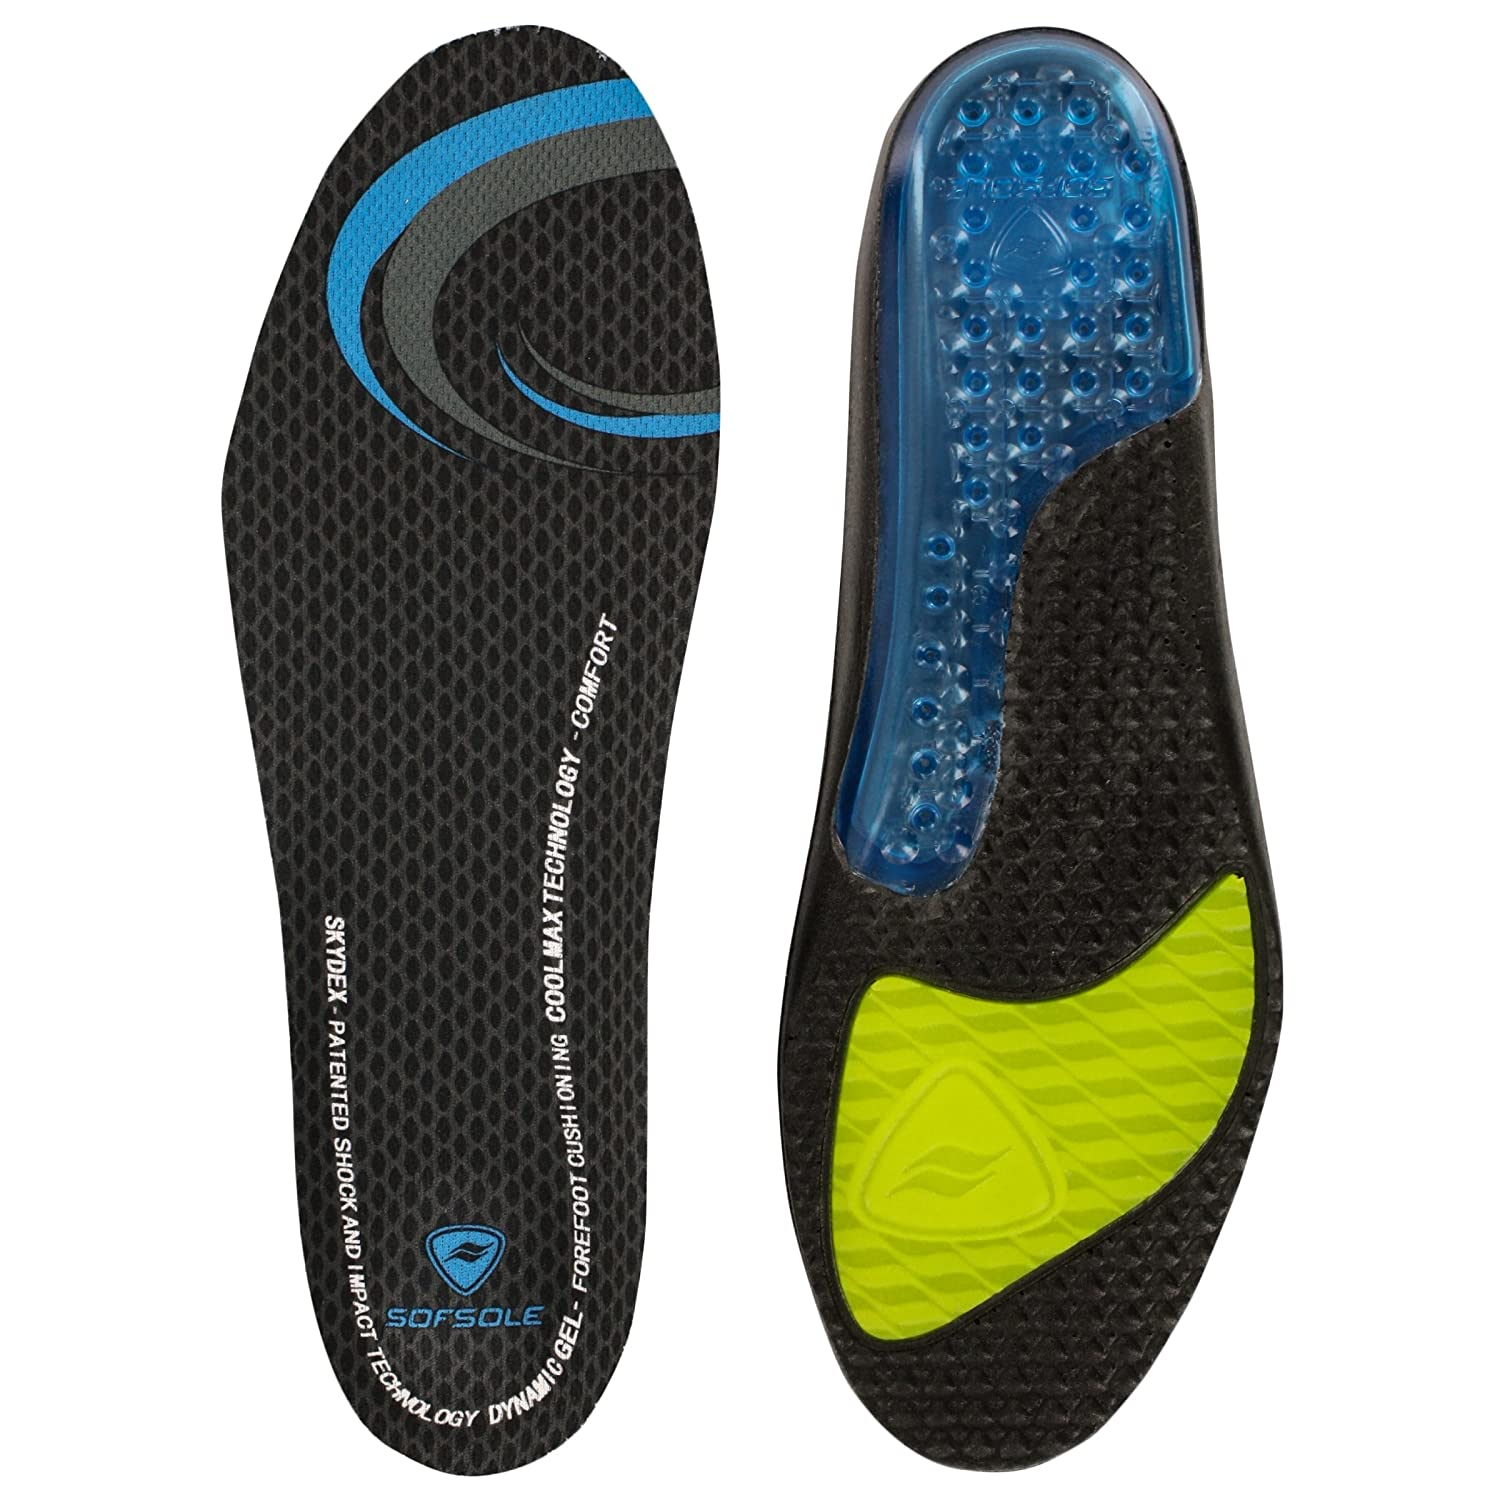 sof sole airr length performance gel shoe insole for